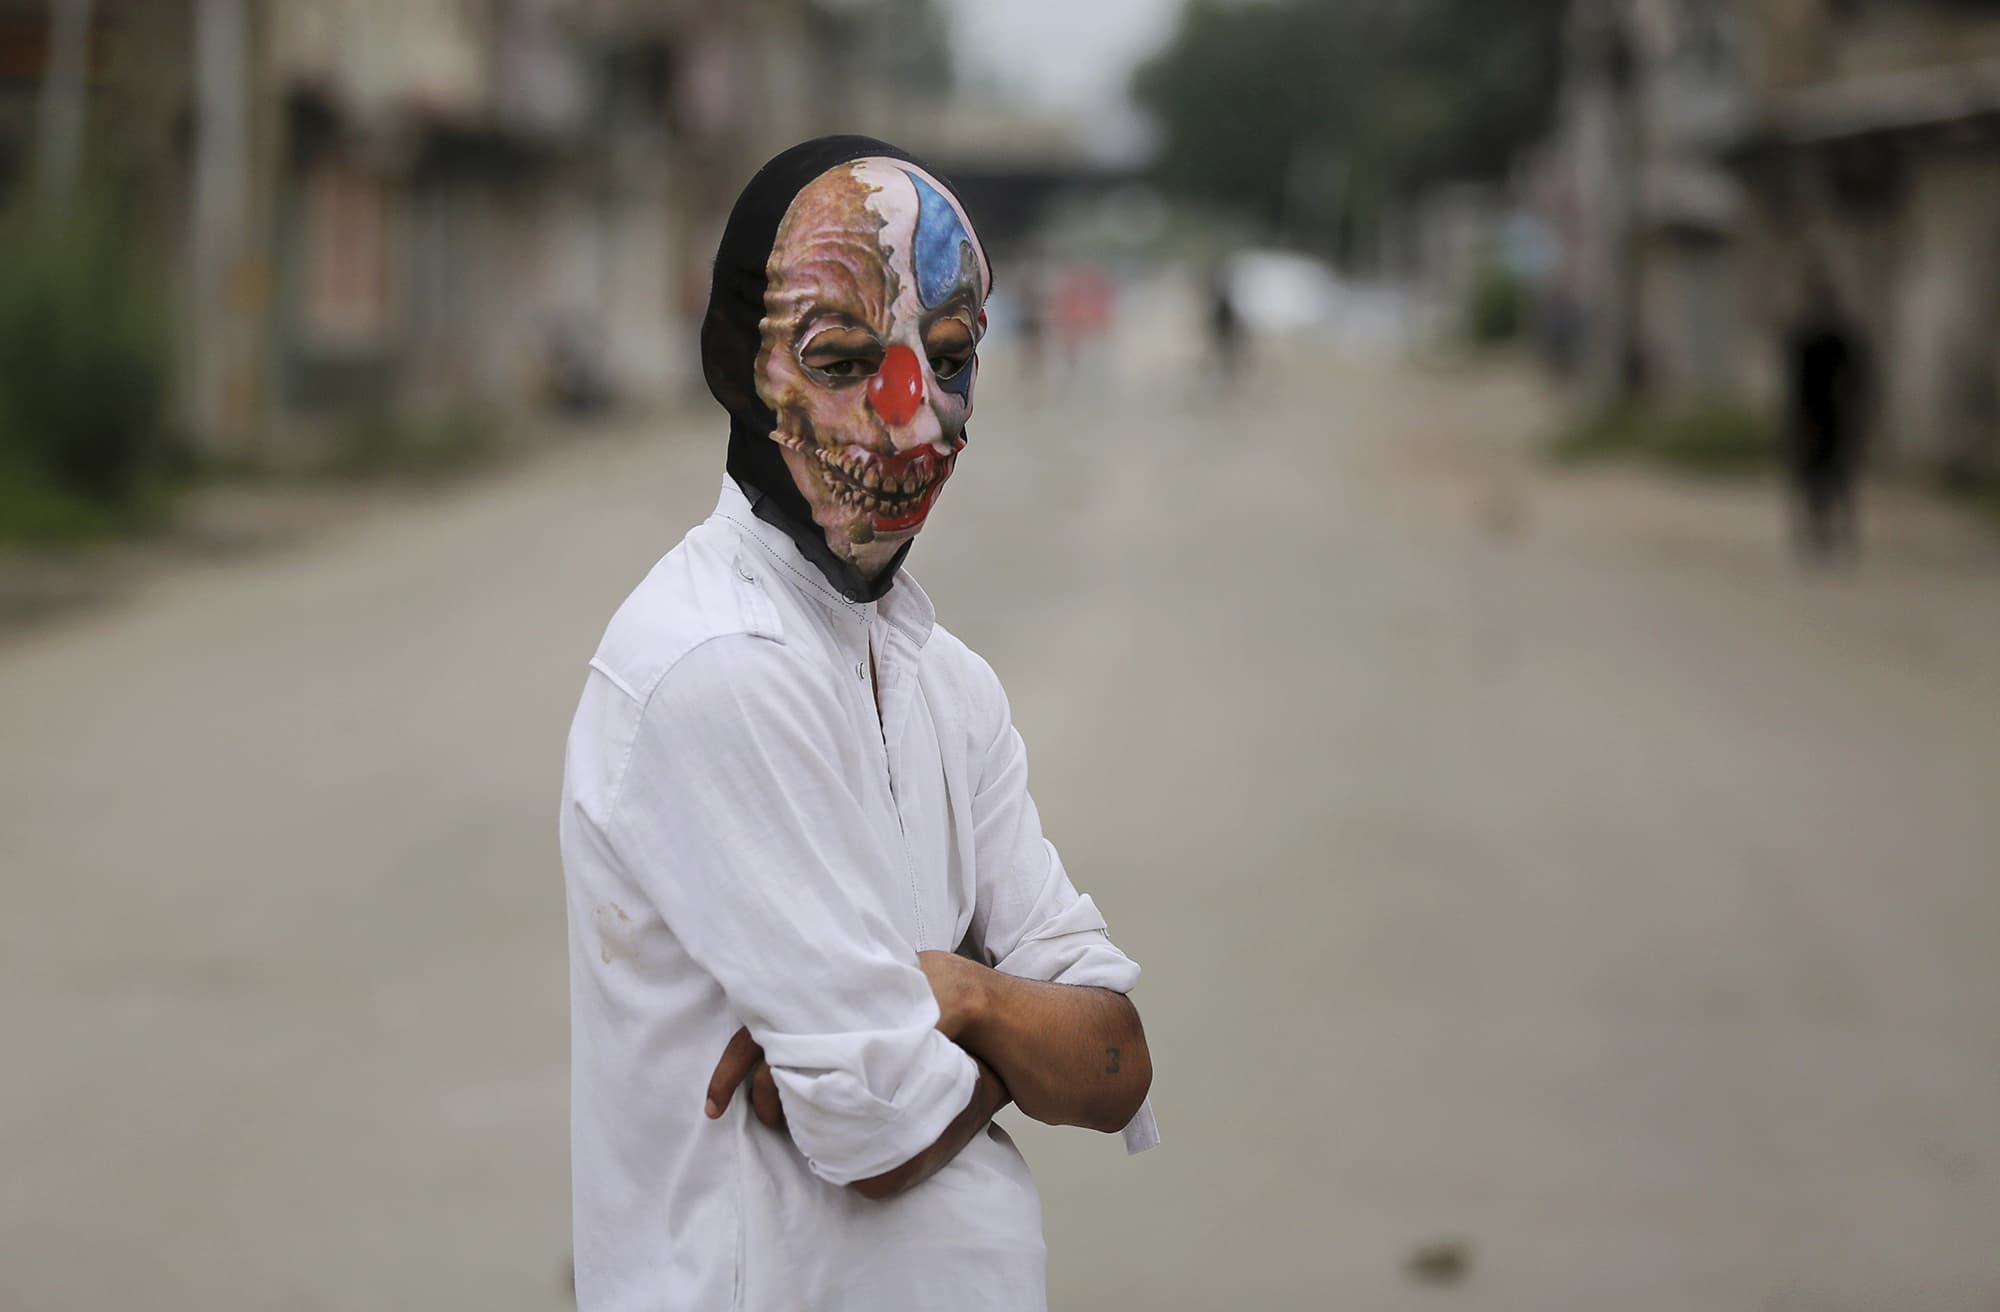 A Kashmiri youth wears a mask to hide his identity as he participates in an anti-India protest as Srinagar remains under curfew. ─ AP